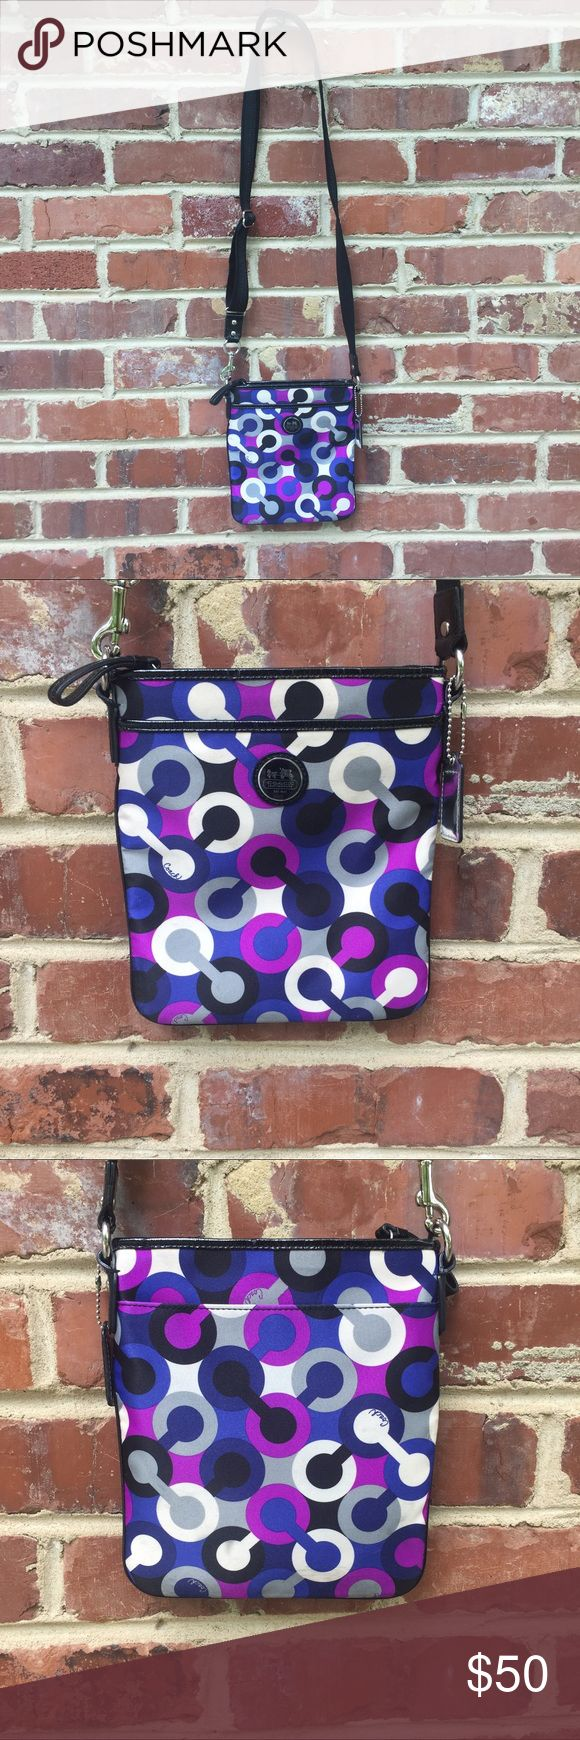 Coach Purple Crossbody Signature Bag Handbag Size 8 x 7. Excellent condition with a few faint surface marks (enlarge photos to see; they are faint so they don't show up well). Strap is removable. Coach Bags Crossbody Bags